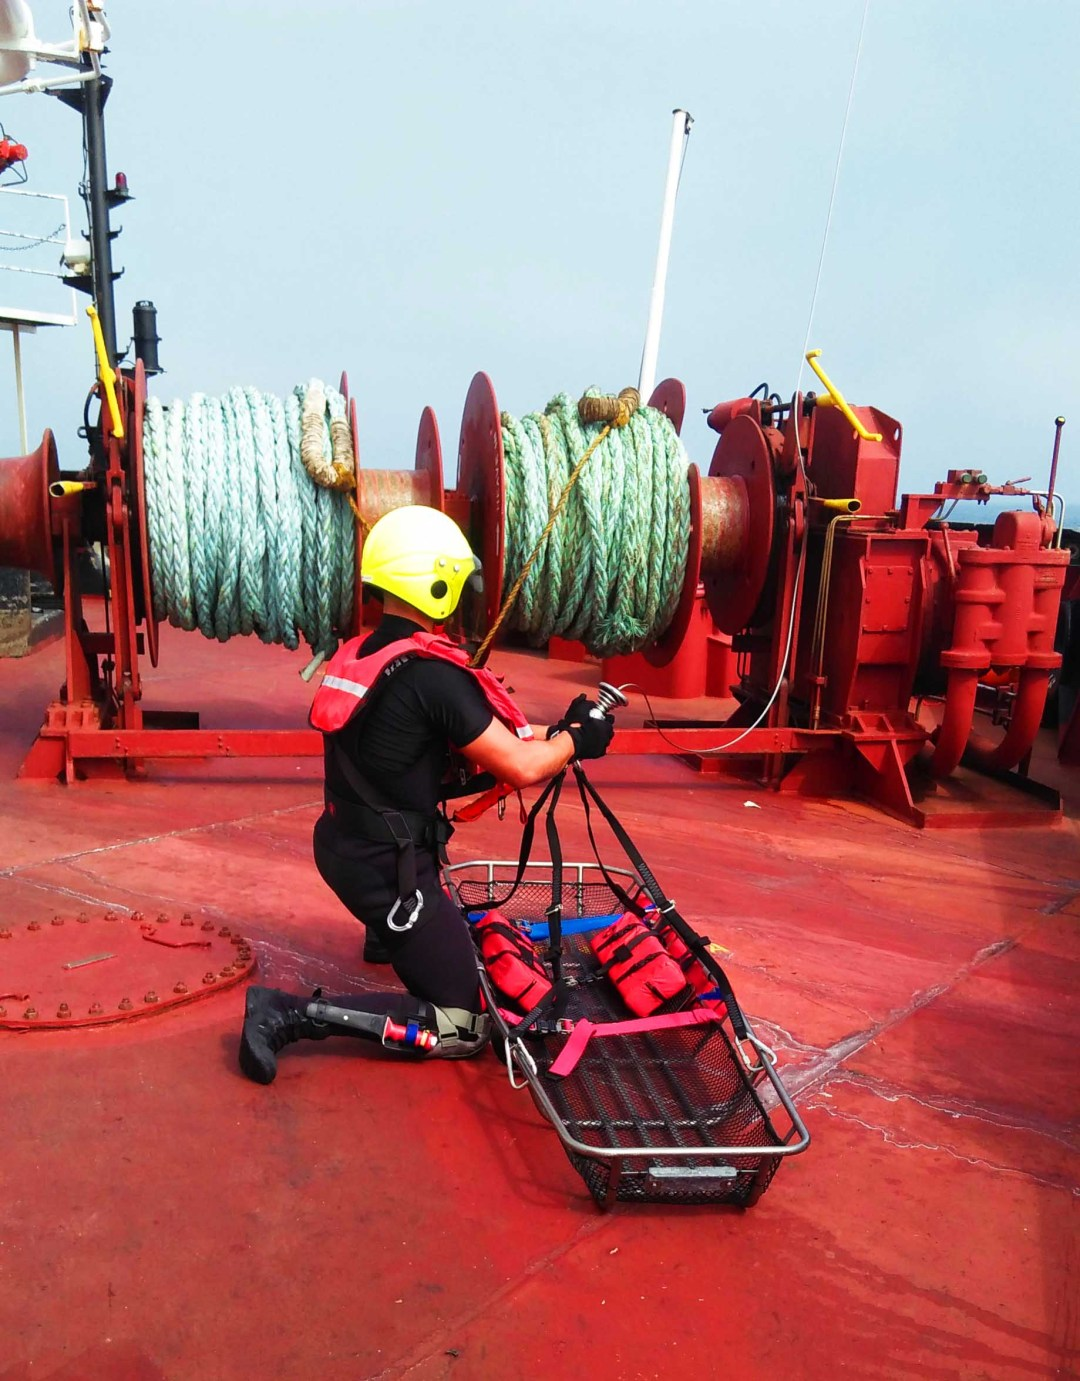 Search and Rescue Volunteer landing on the poop deck of a ship with stretcher